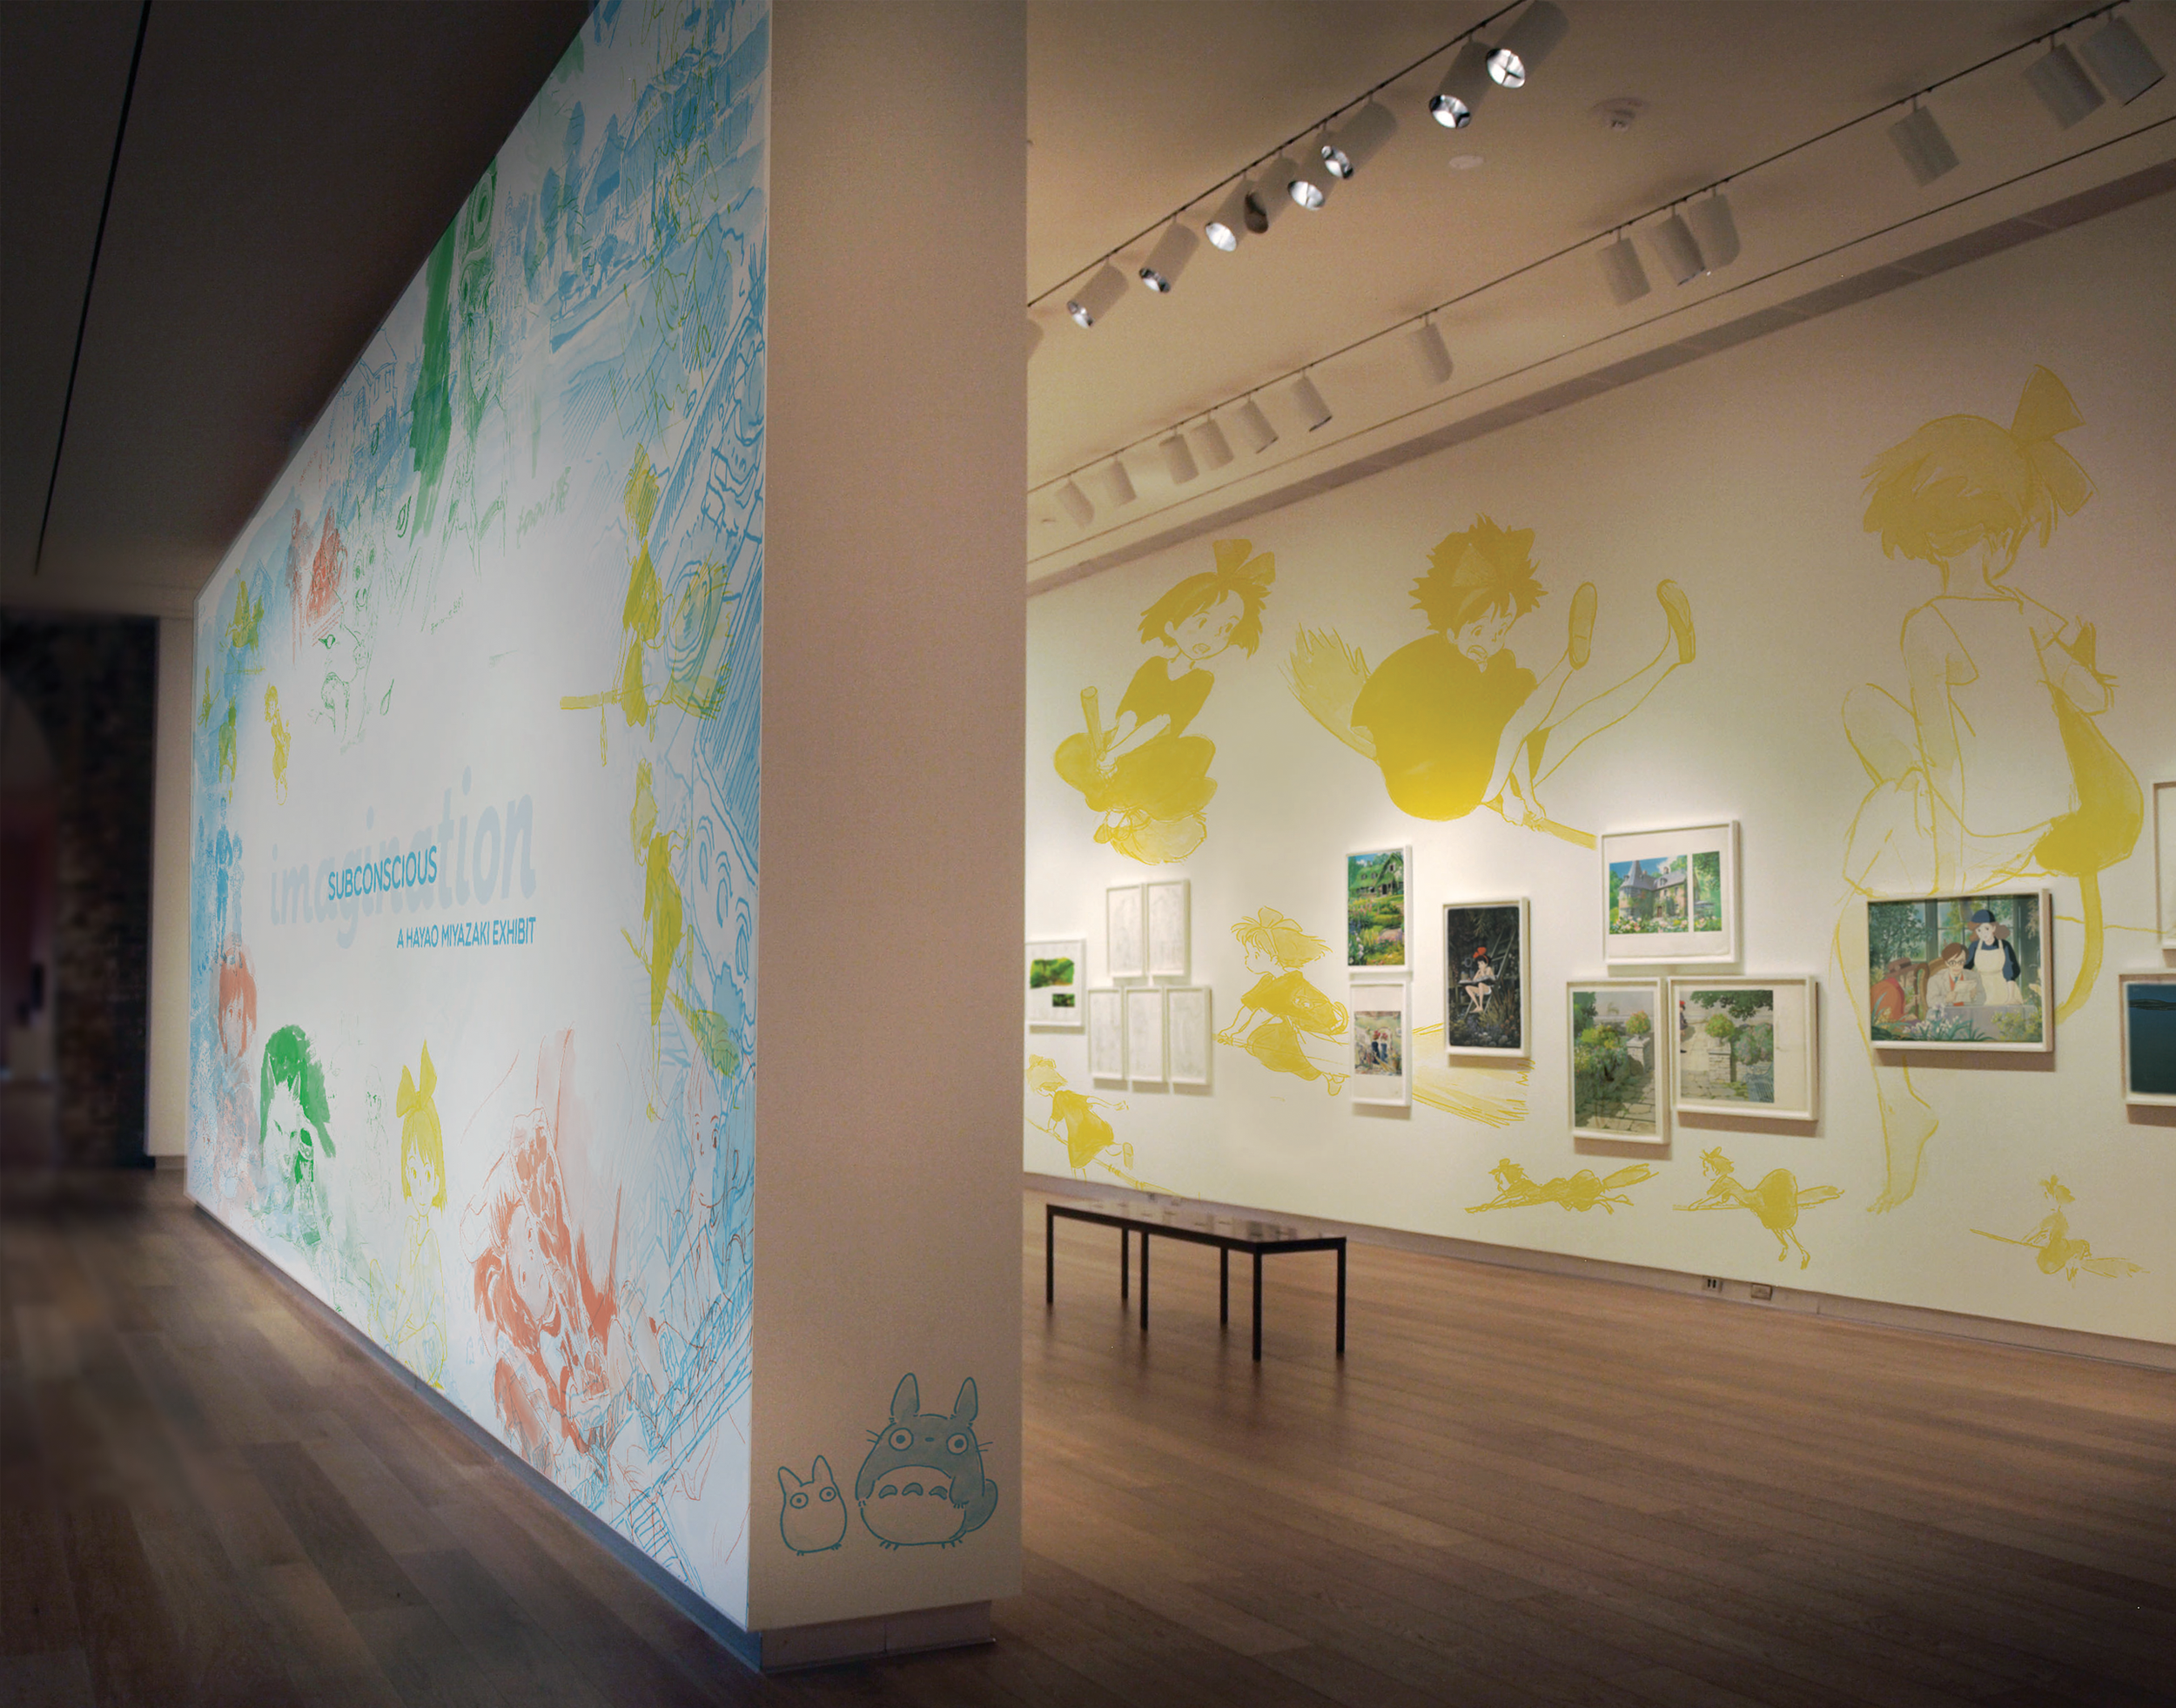 The entryway and main splash wall when entering the exhibit, with supporting graphics on the walls.